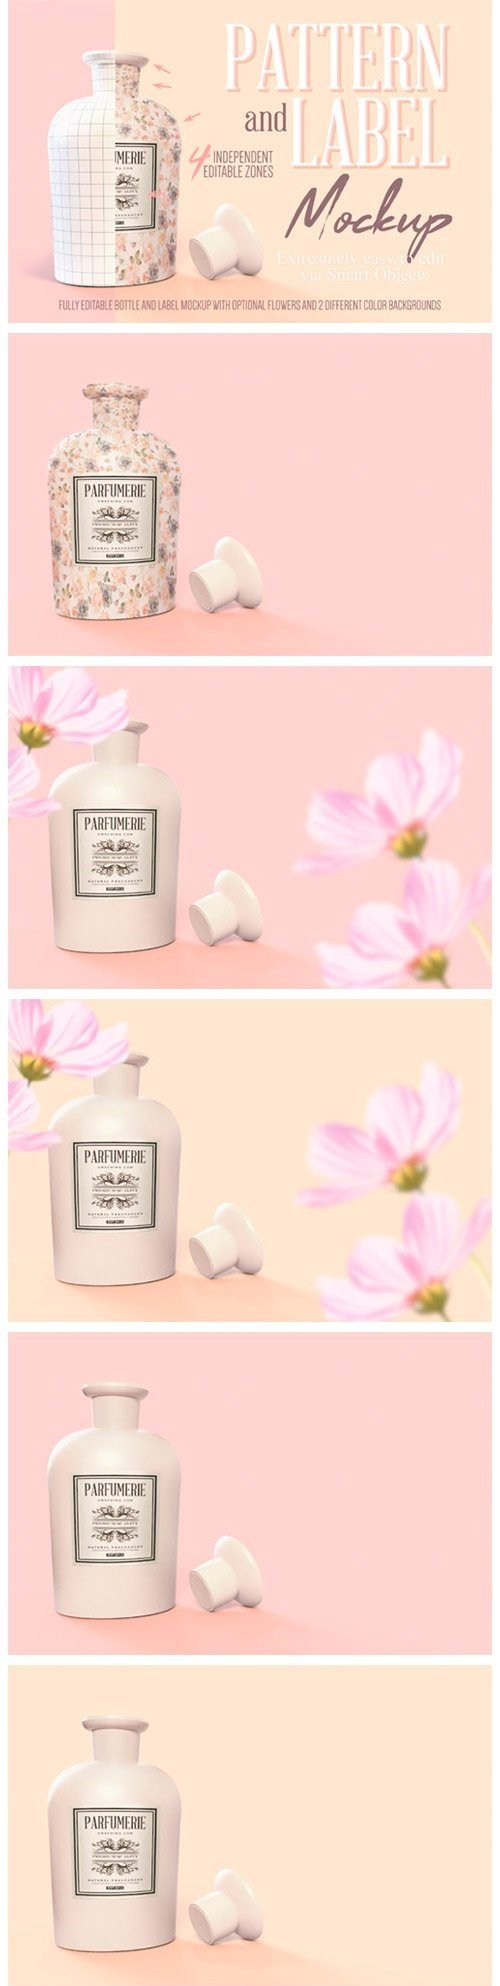 Pattern & Label Parfum Bottle Mockup - 4517819